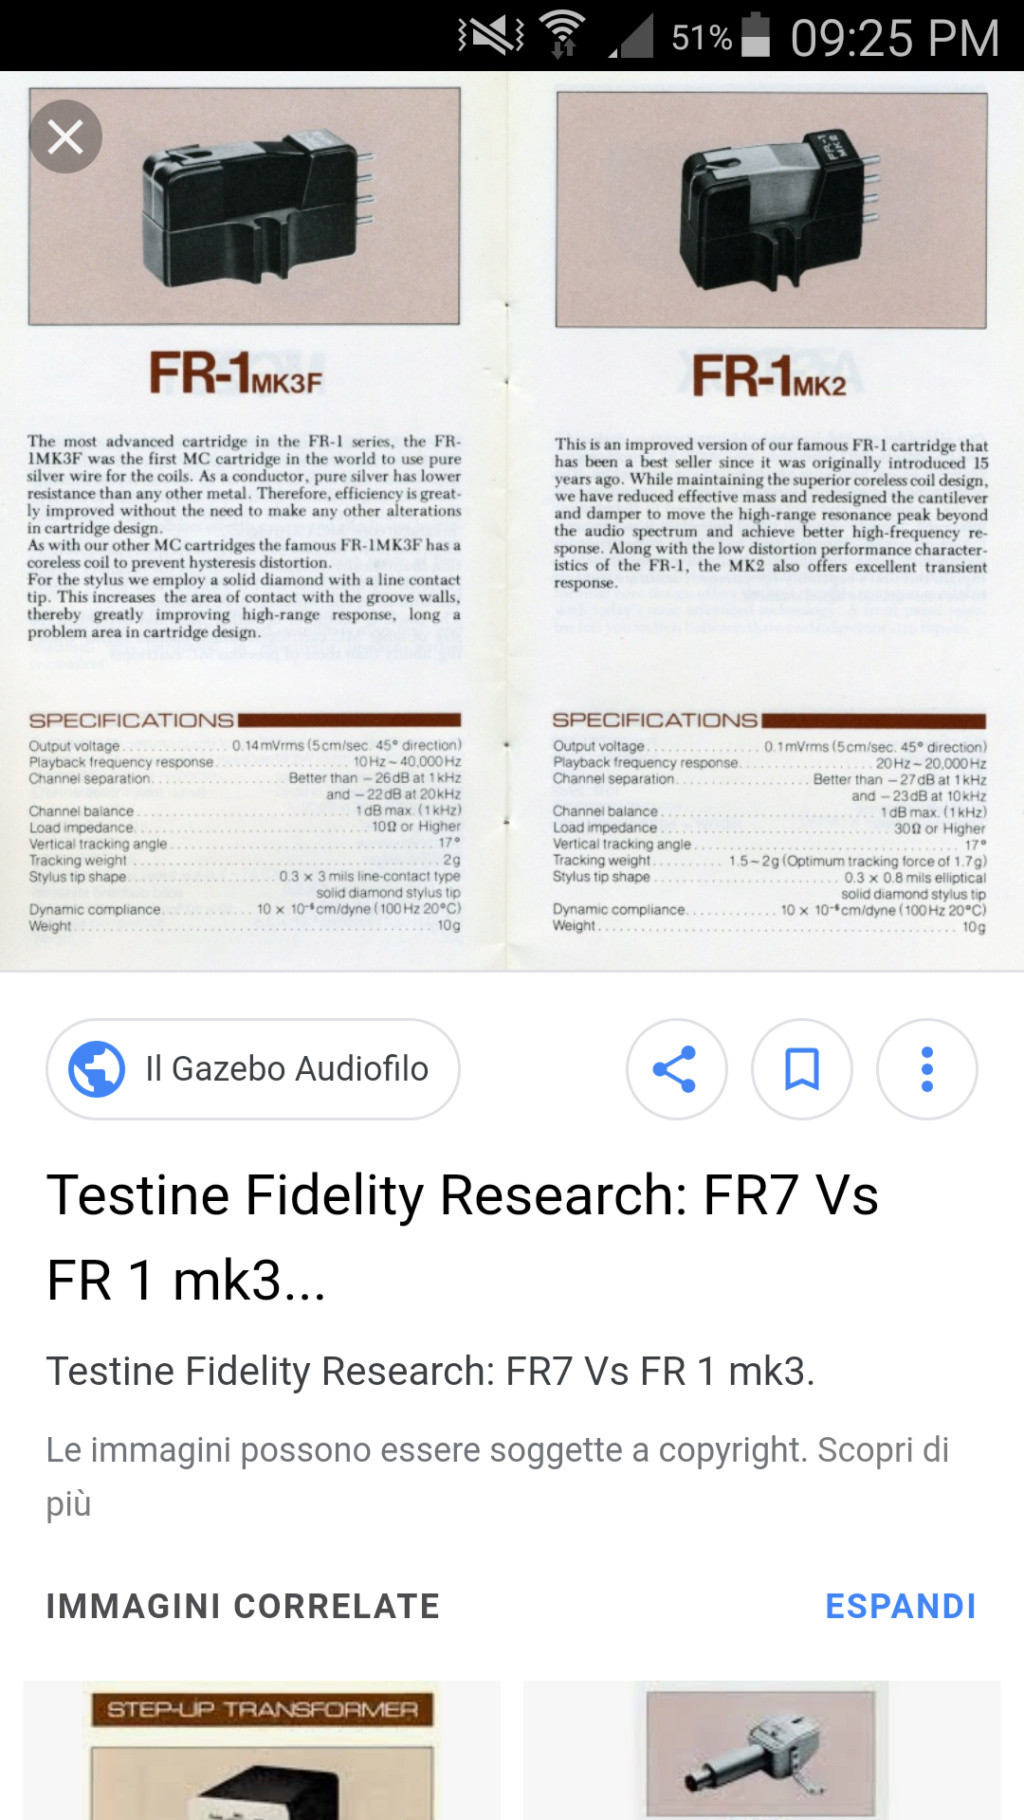 Braccio per testine fidelity research Screen10